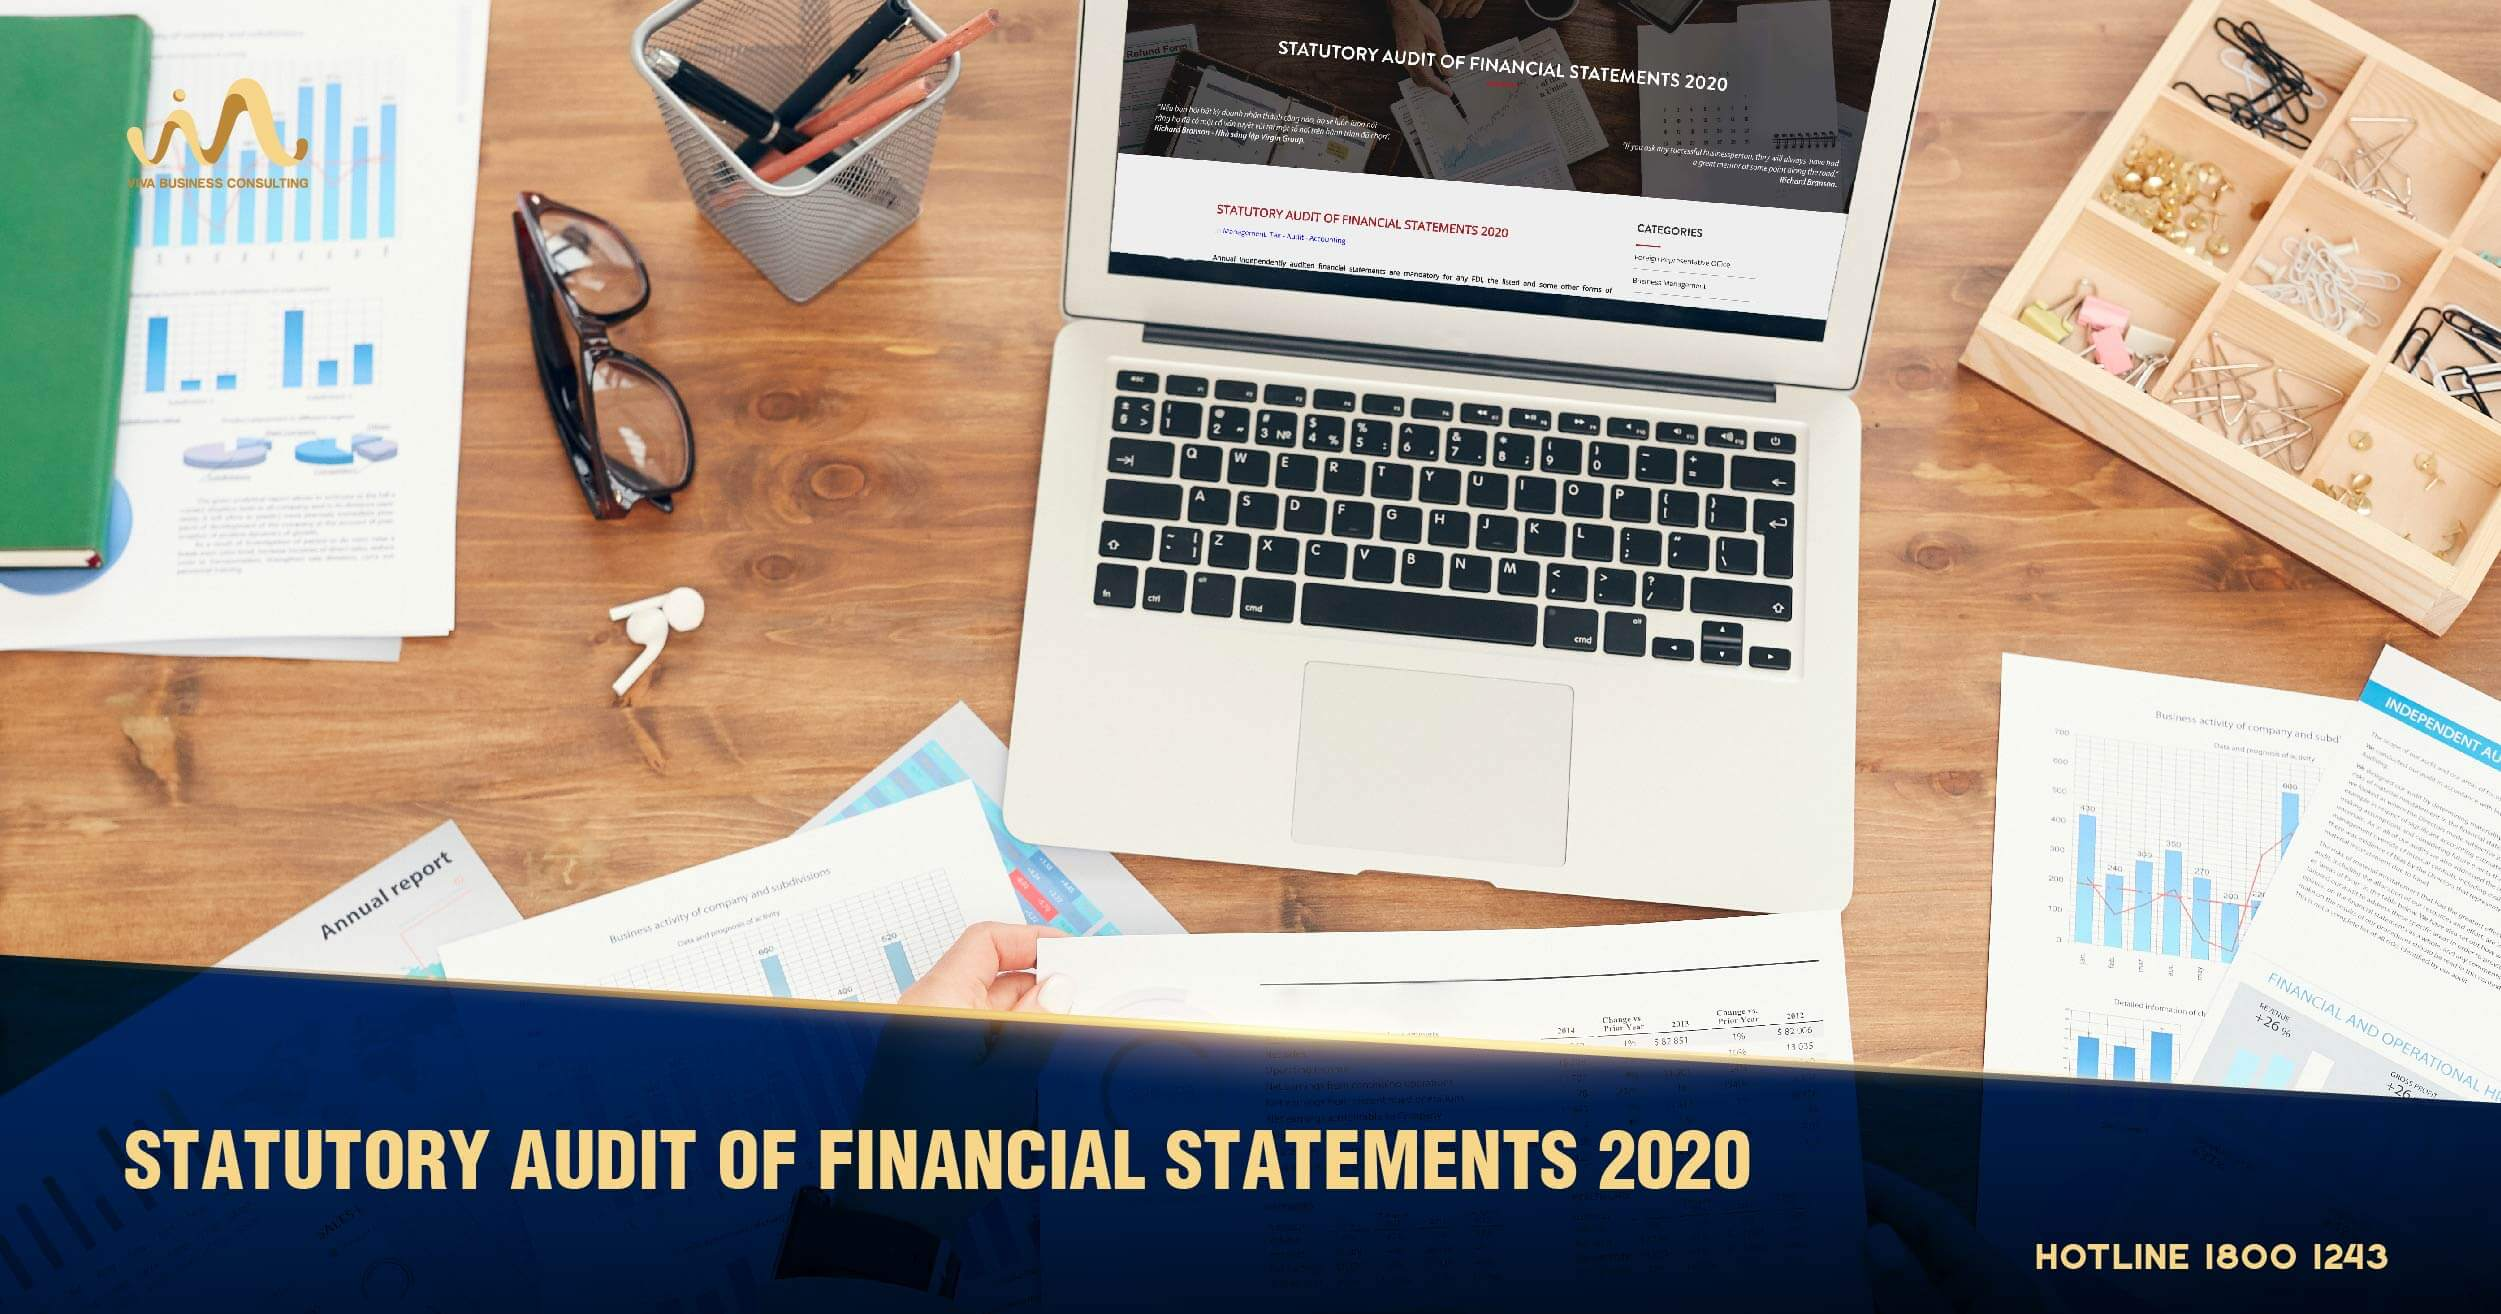 Statutory Audit Of Financial Statements 2020